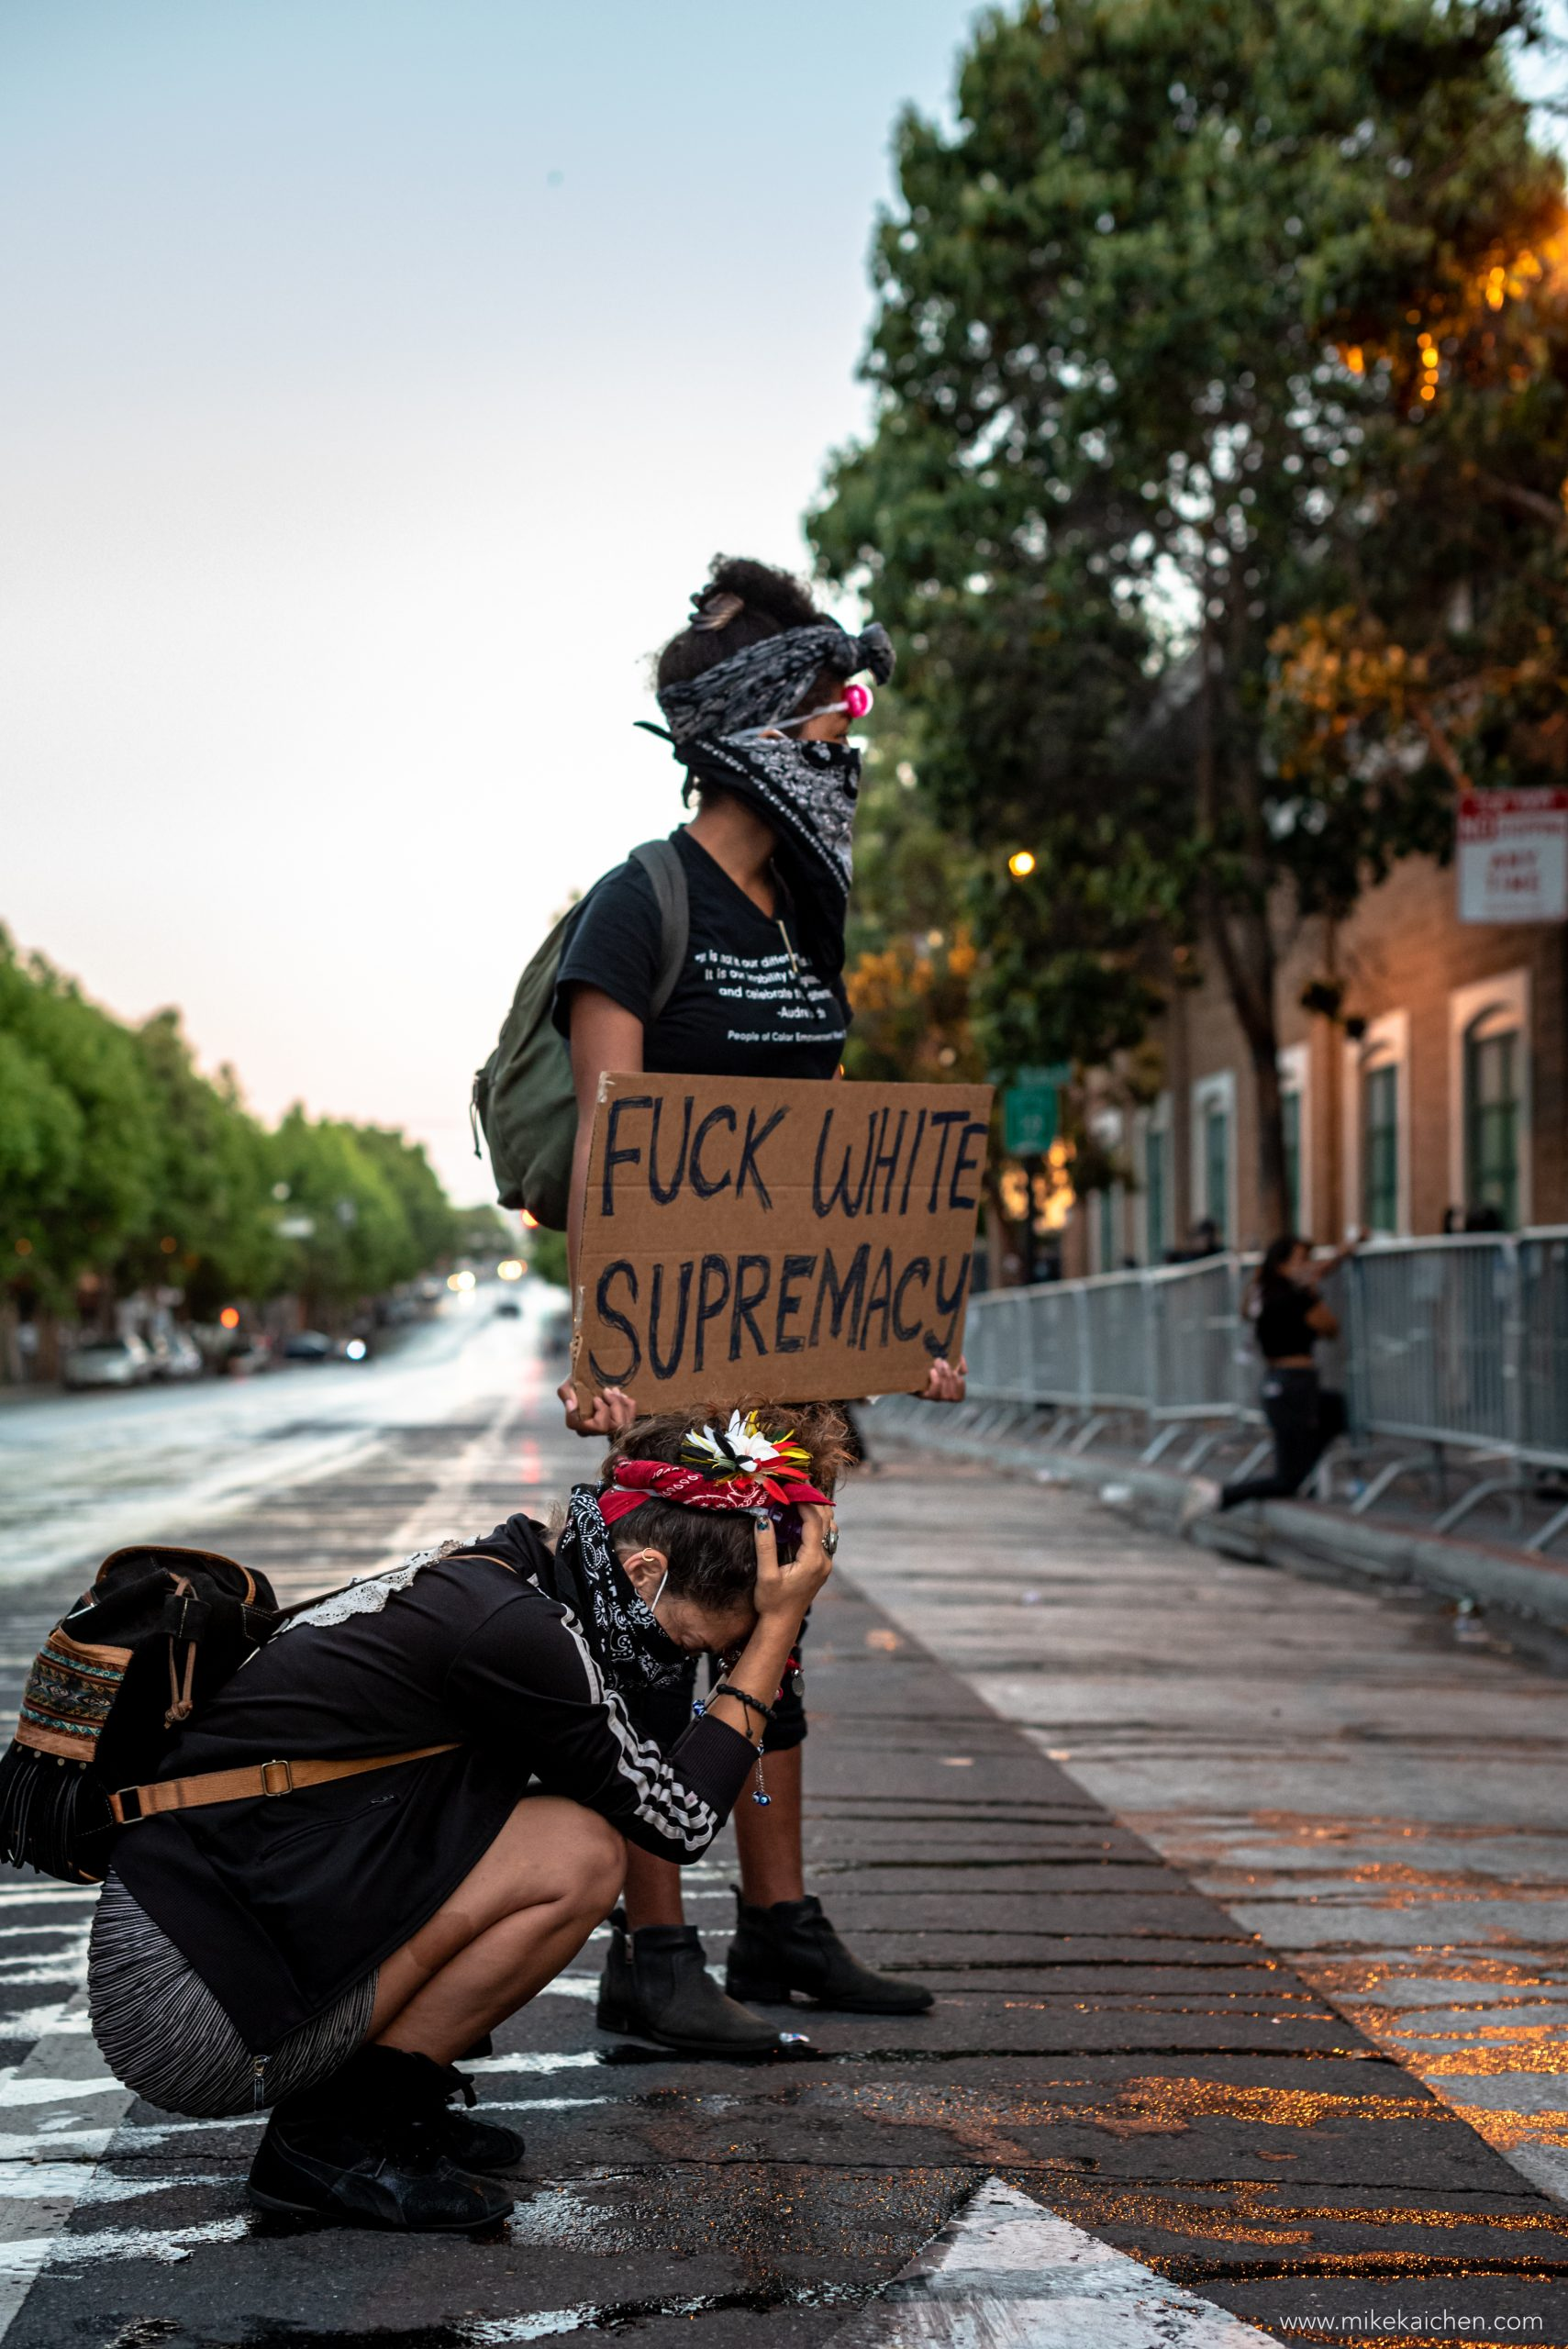 """Two women wearing bandanas hold protest signs. One sign says """"Fuck White Supremacy."""""""